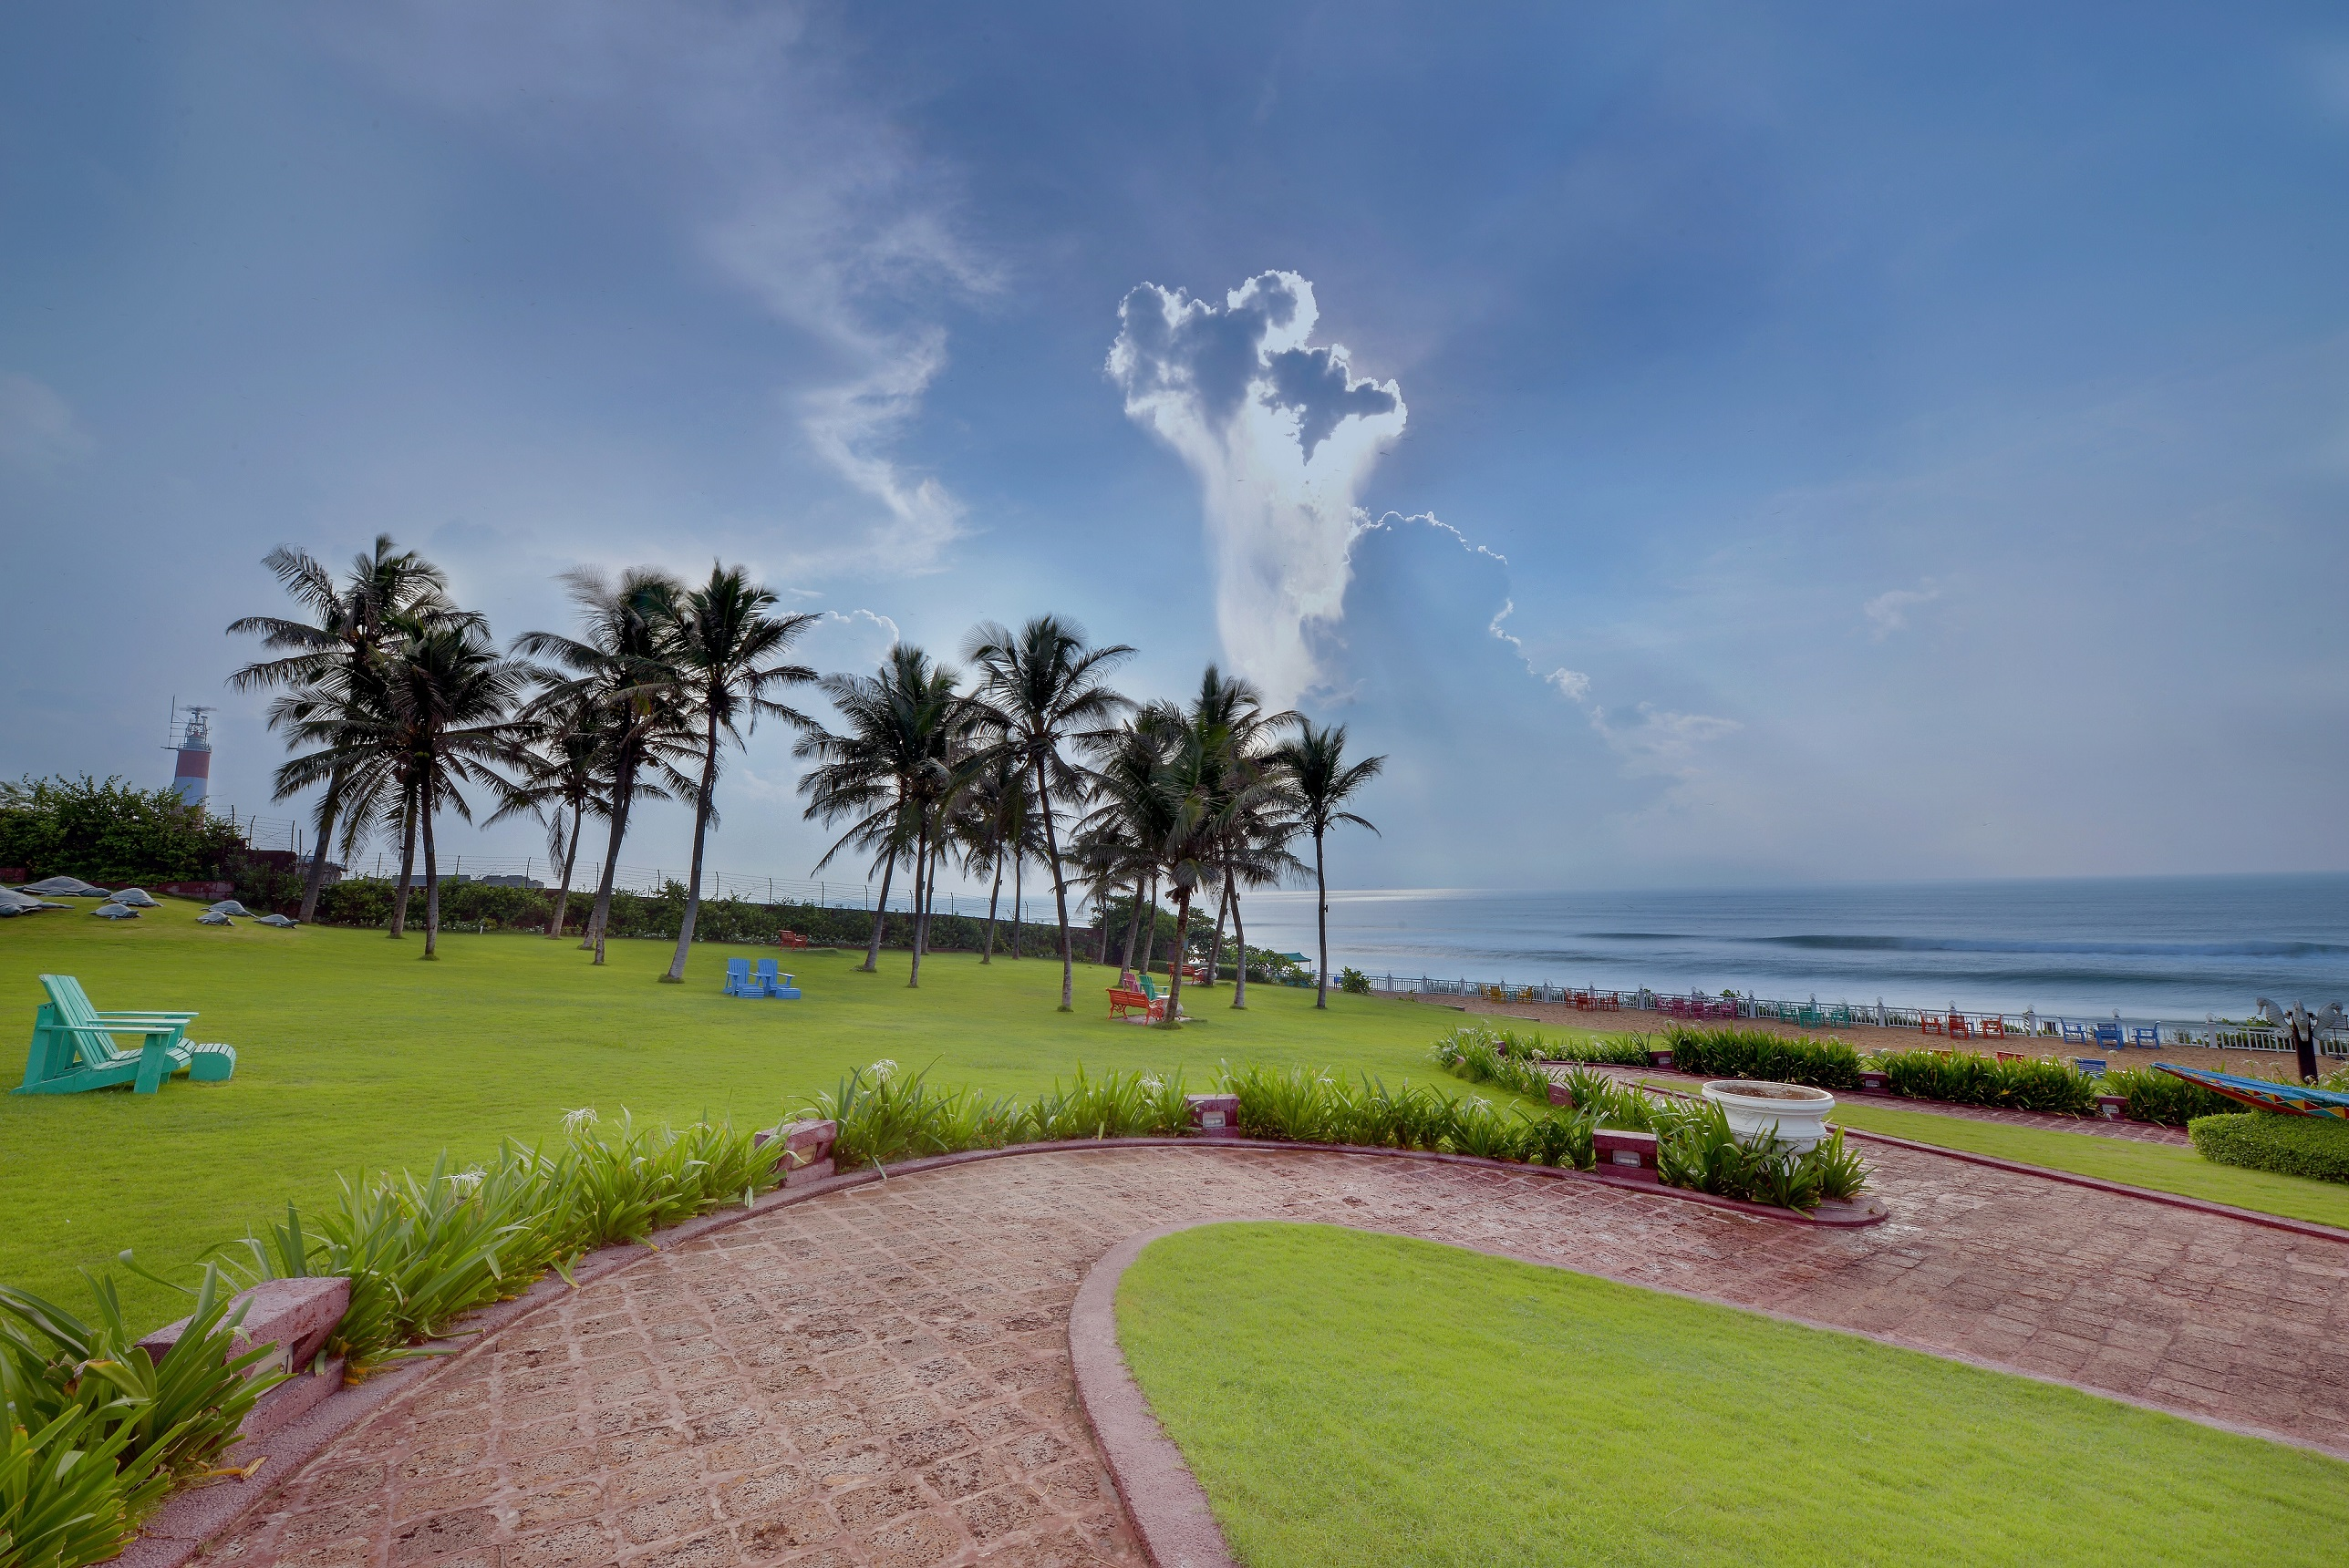 Lawn-Mayfair-Gopalpur